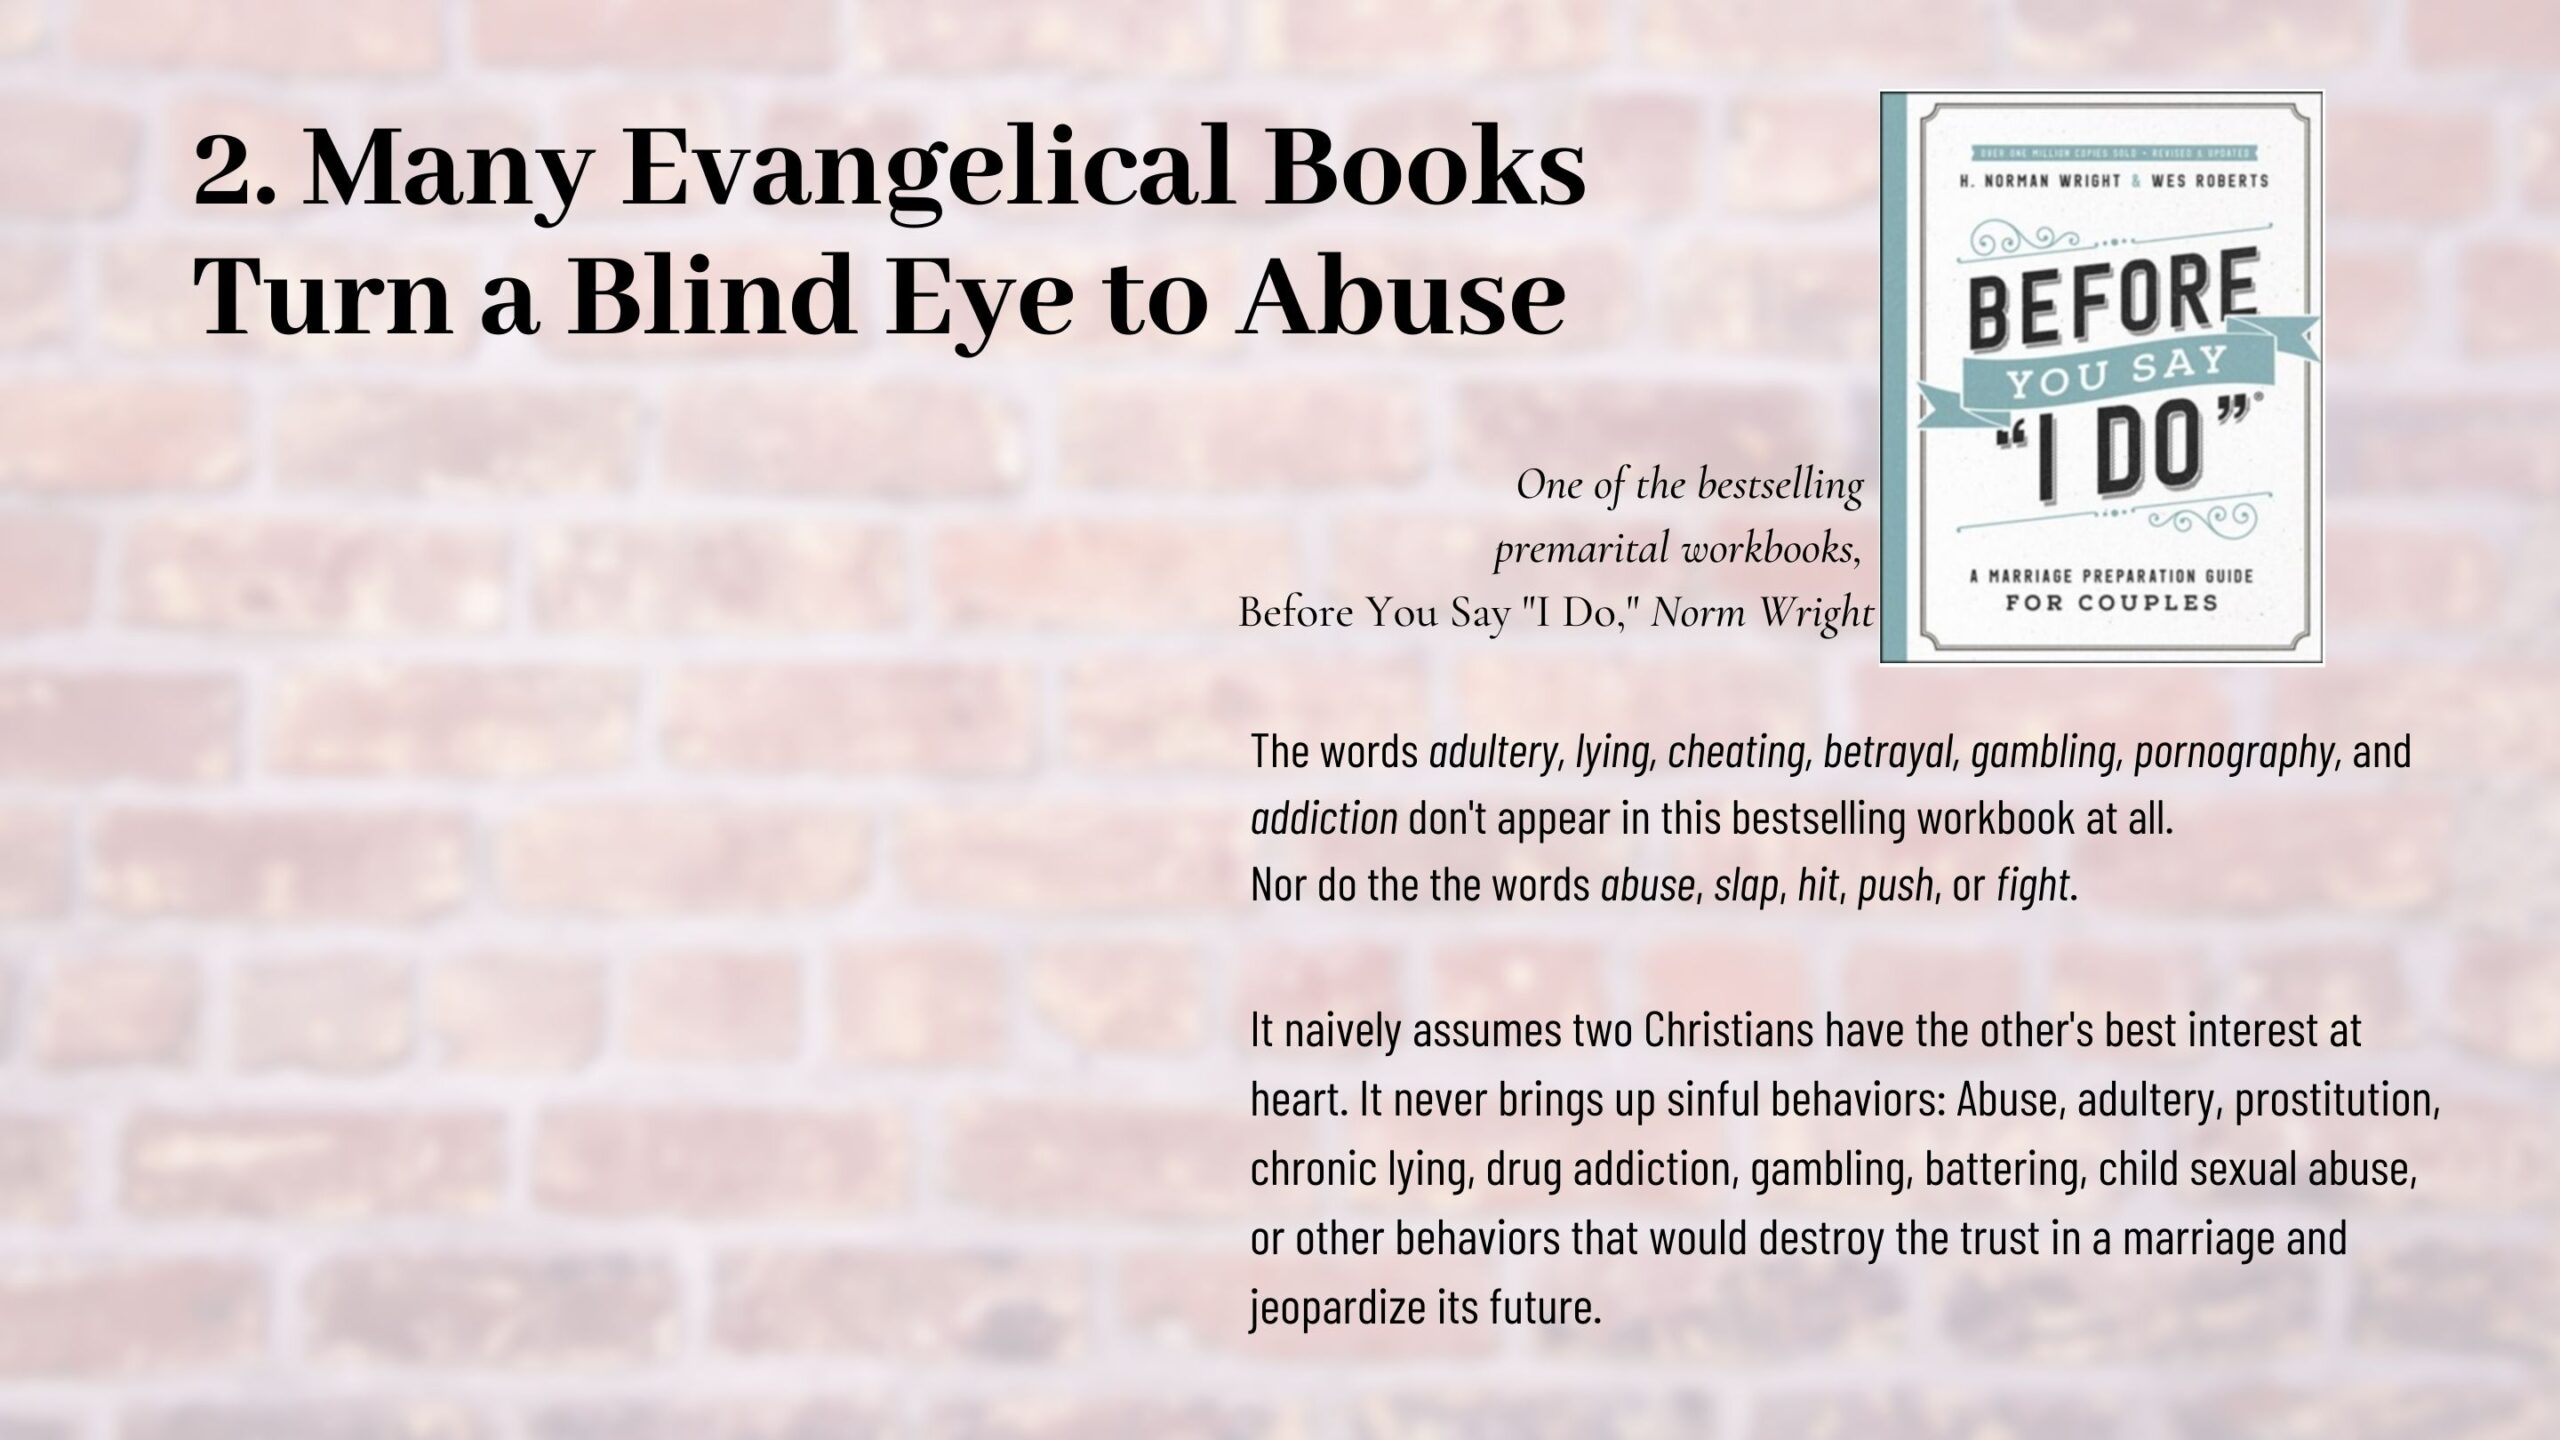 EVANGELICAL books often ignore the topic of abuse and other serious problems.